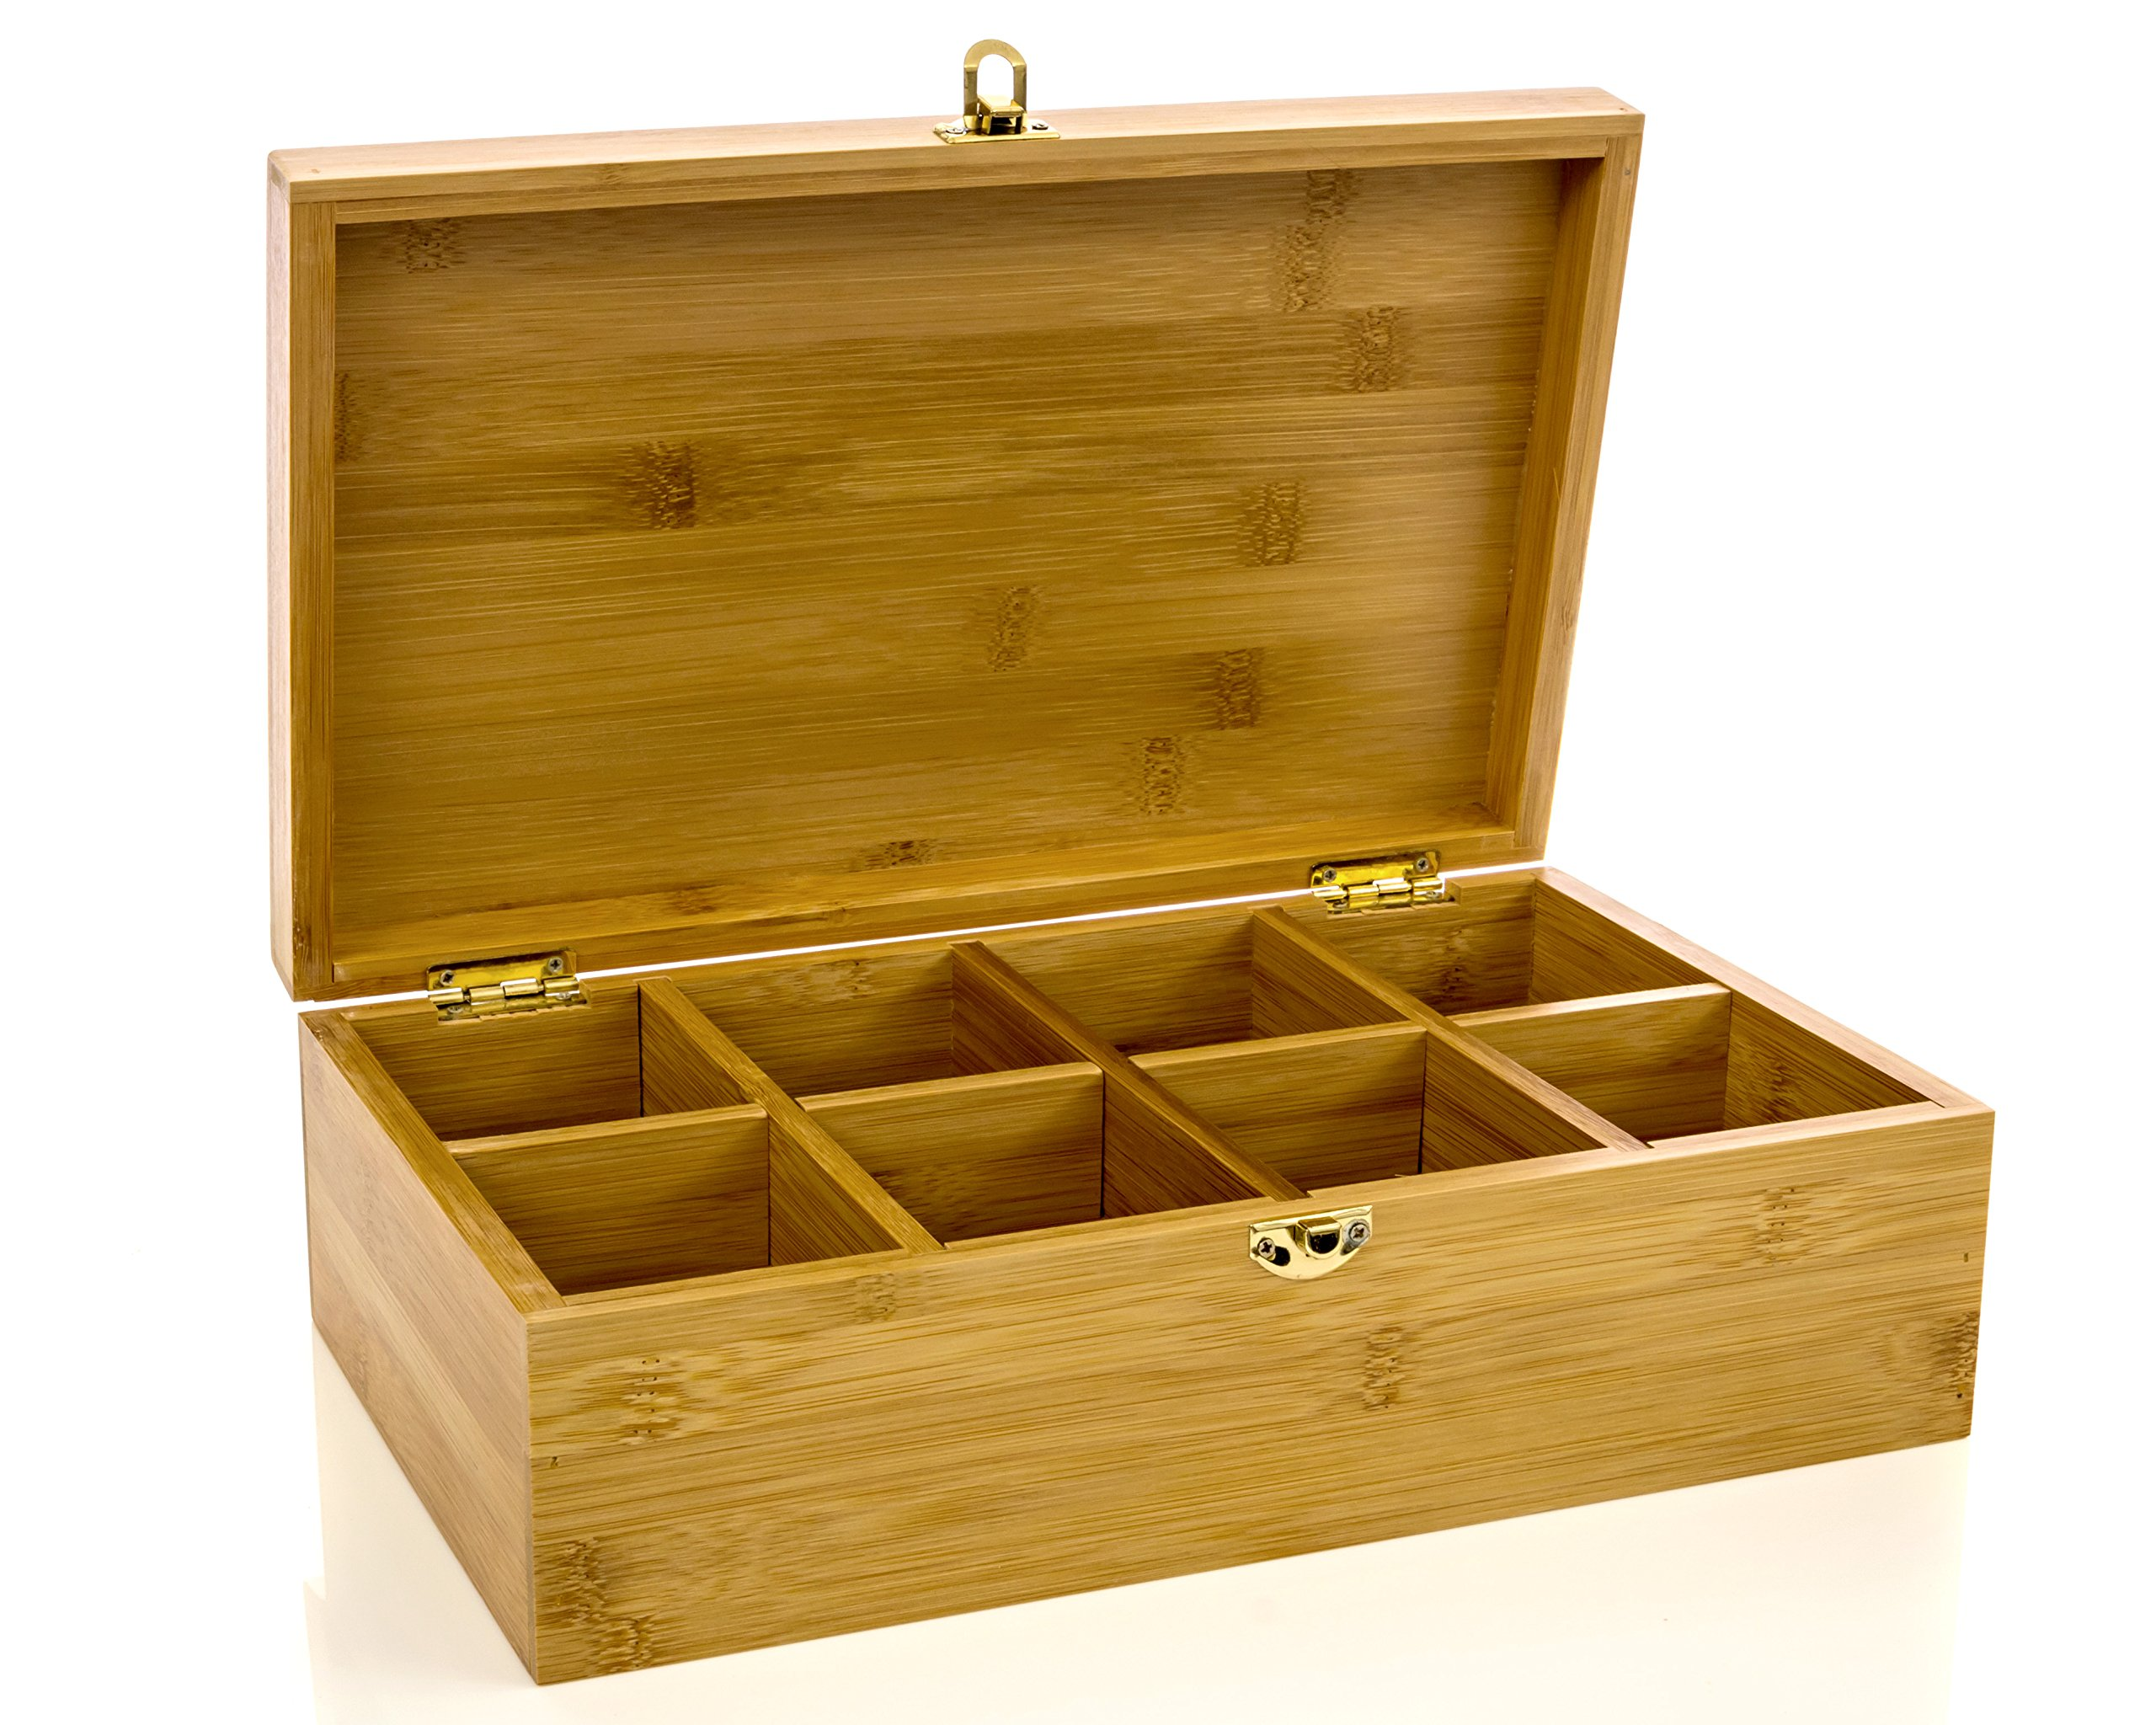 Tea Box , Tea Storage, Tea Holder with Bamboo Lid 8 Compartment with Stylish Lock Multipurpose Storage By Intriom Bamboo Collection